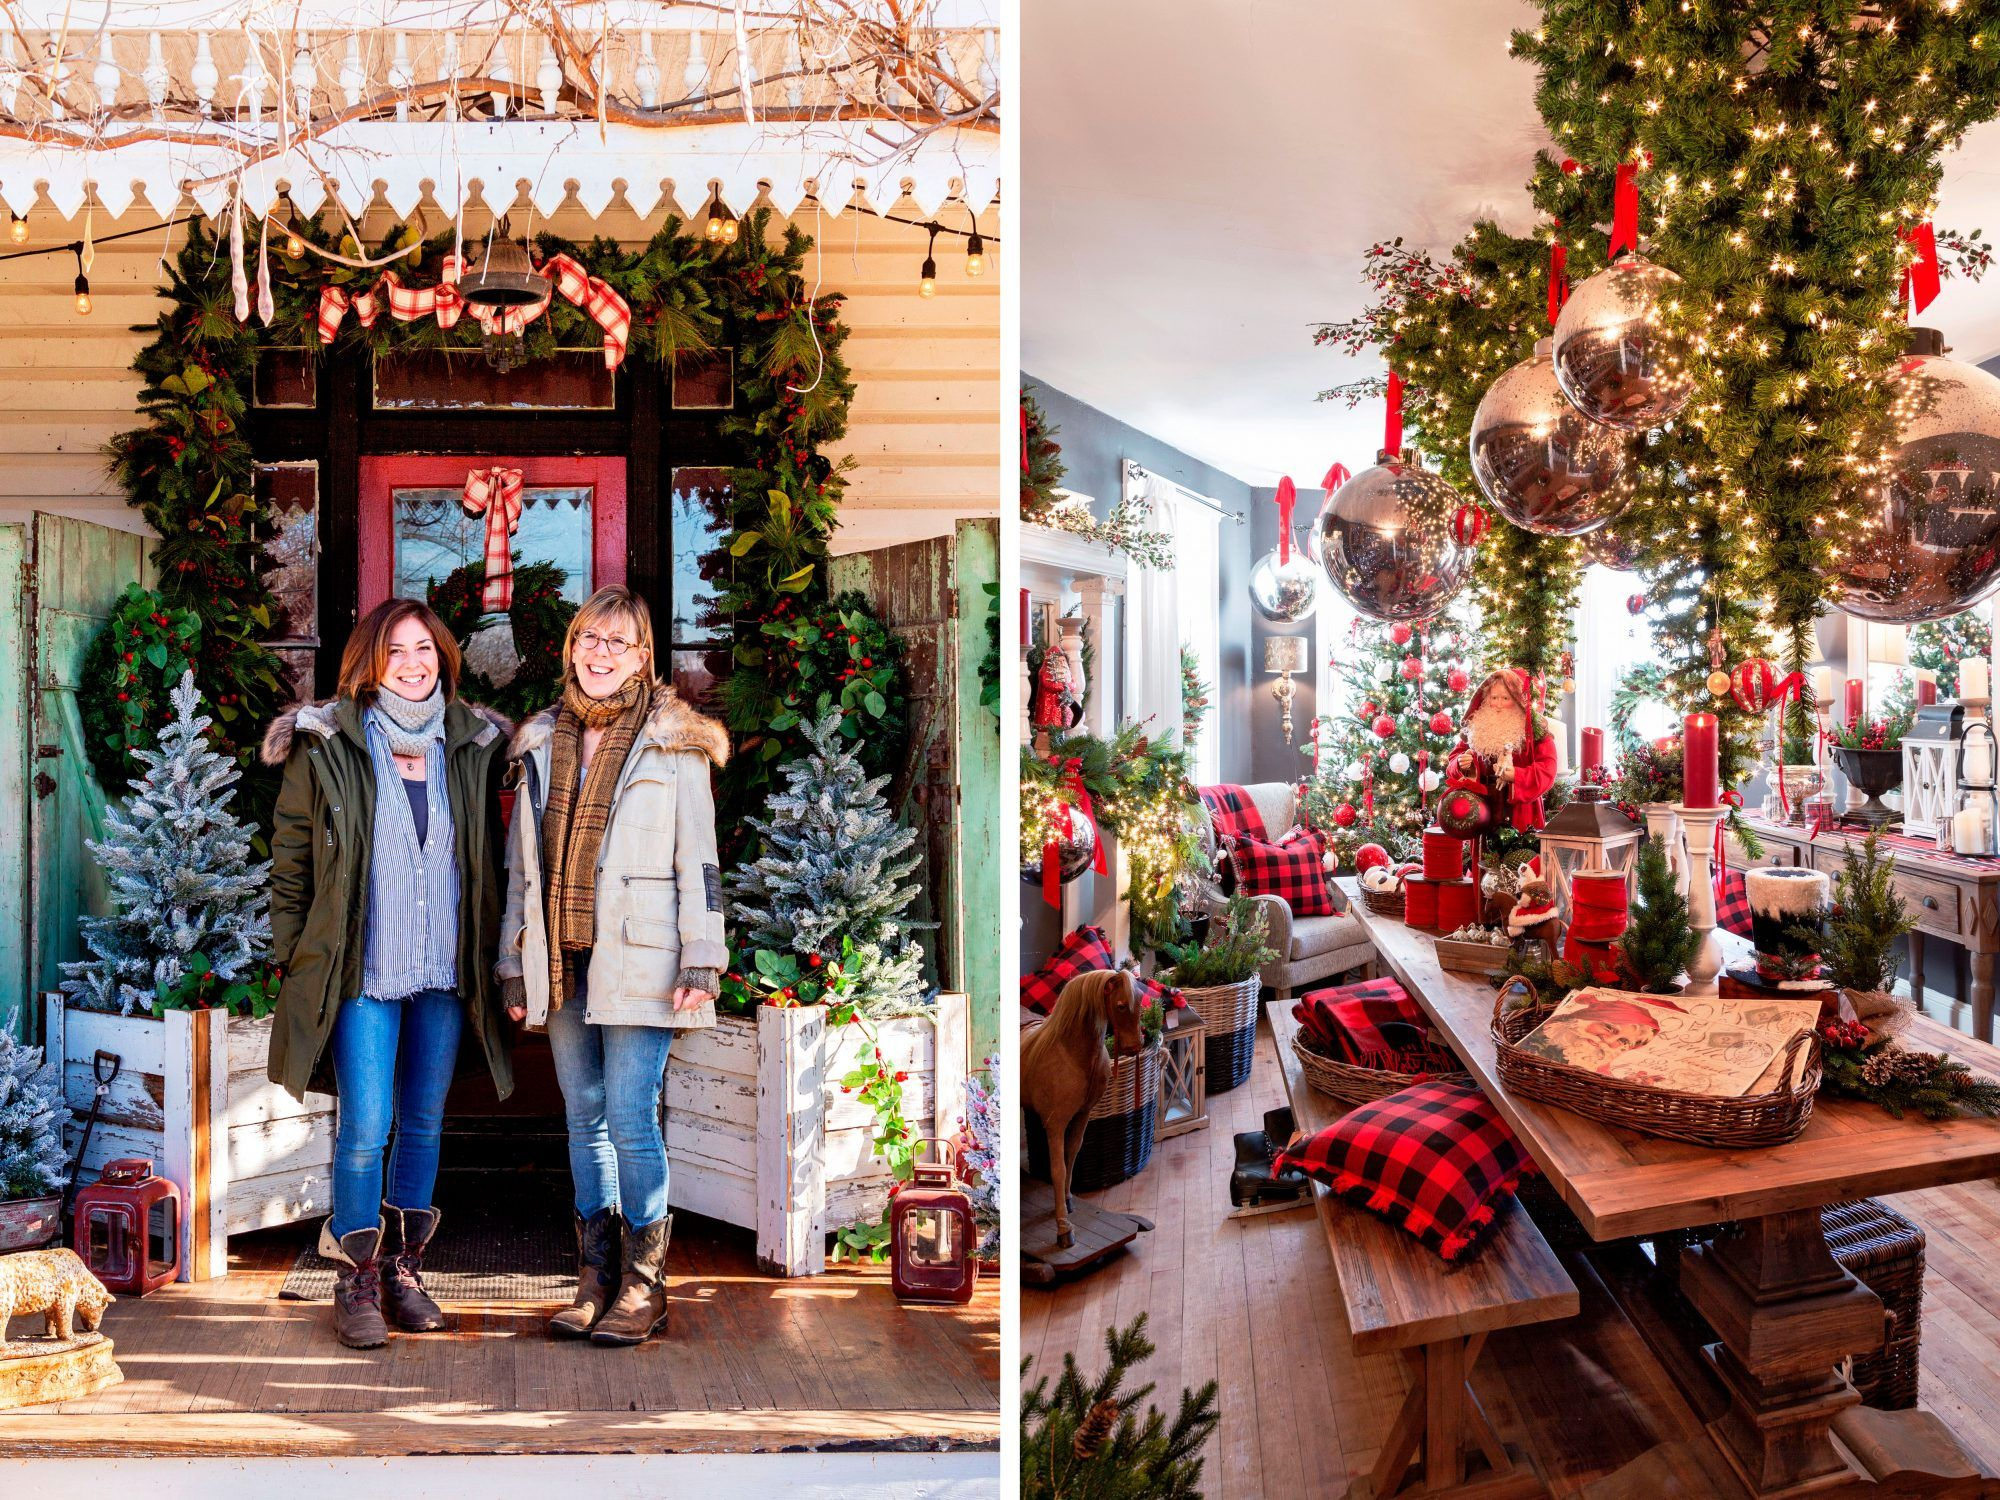 Leesburg, Virginia is a Charming Town With So Much Christmas Spirit